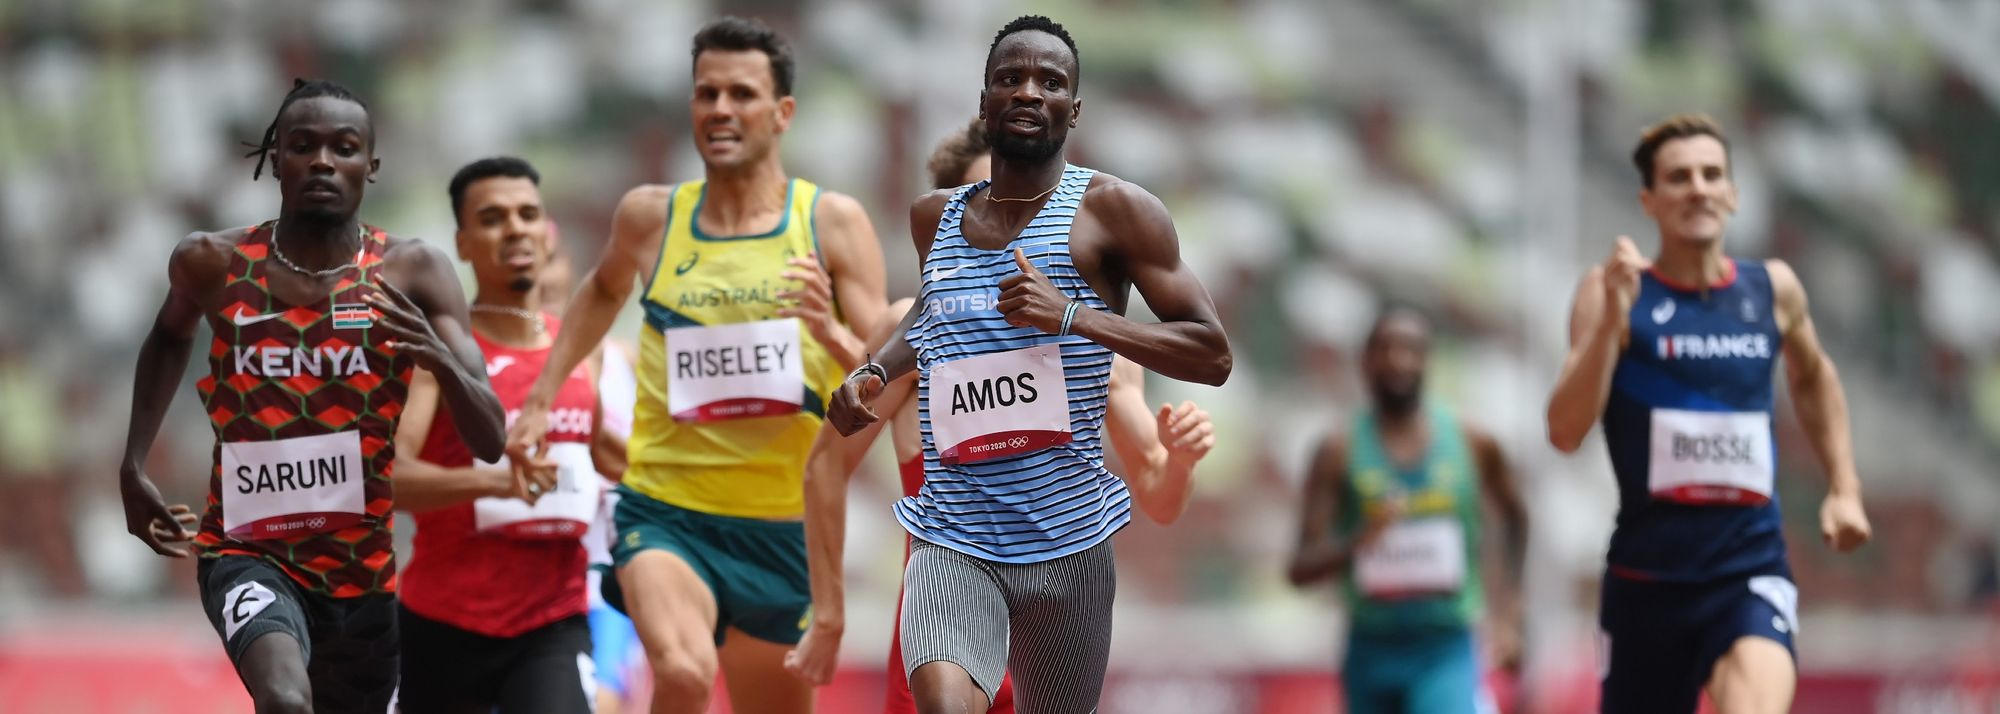 Athletes like setting the bar high. Nijel Amos raised his impossibly high nine years ago when he finished second behind David Rudisha's epic world record-breaking run.